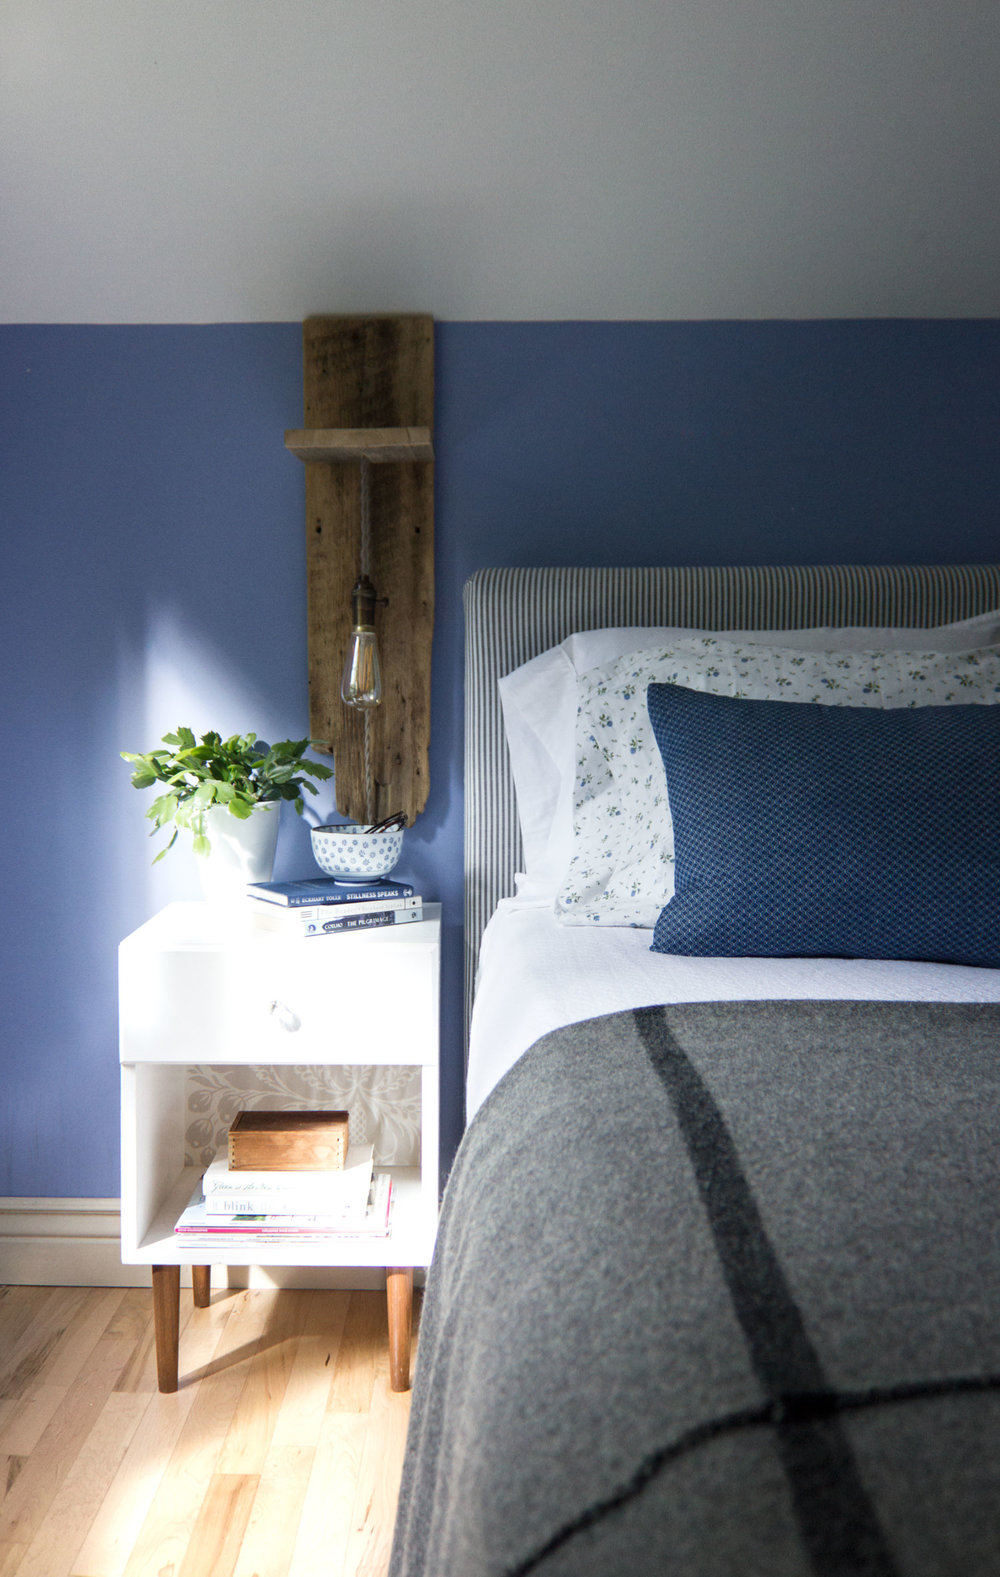 morning-sunshine-in-blue-bedroom.jpg